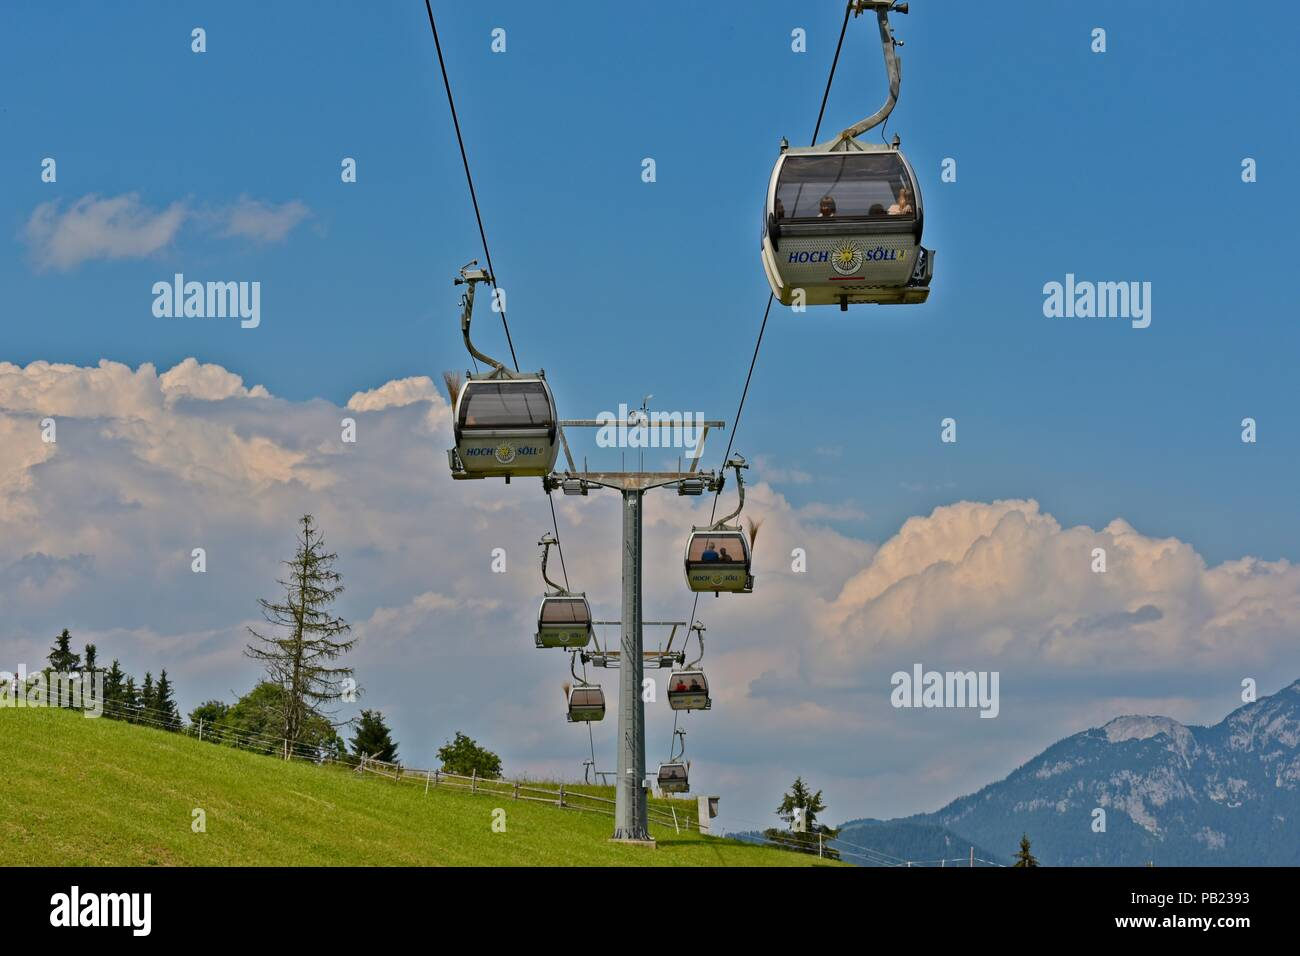 Soell, Tyrol, Austria - June 30, 2018: Gondolas to the Witches Water (Hexenwasser) theme park - Stock Image